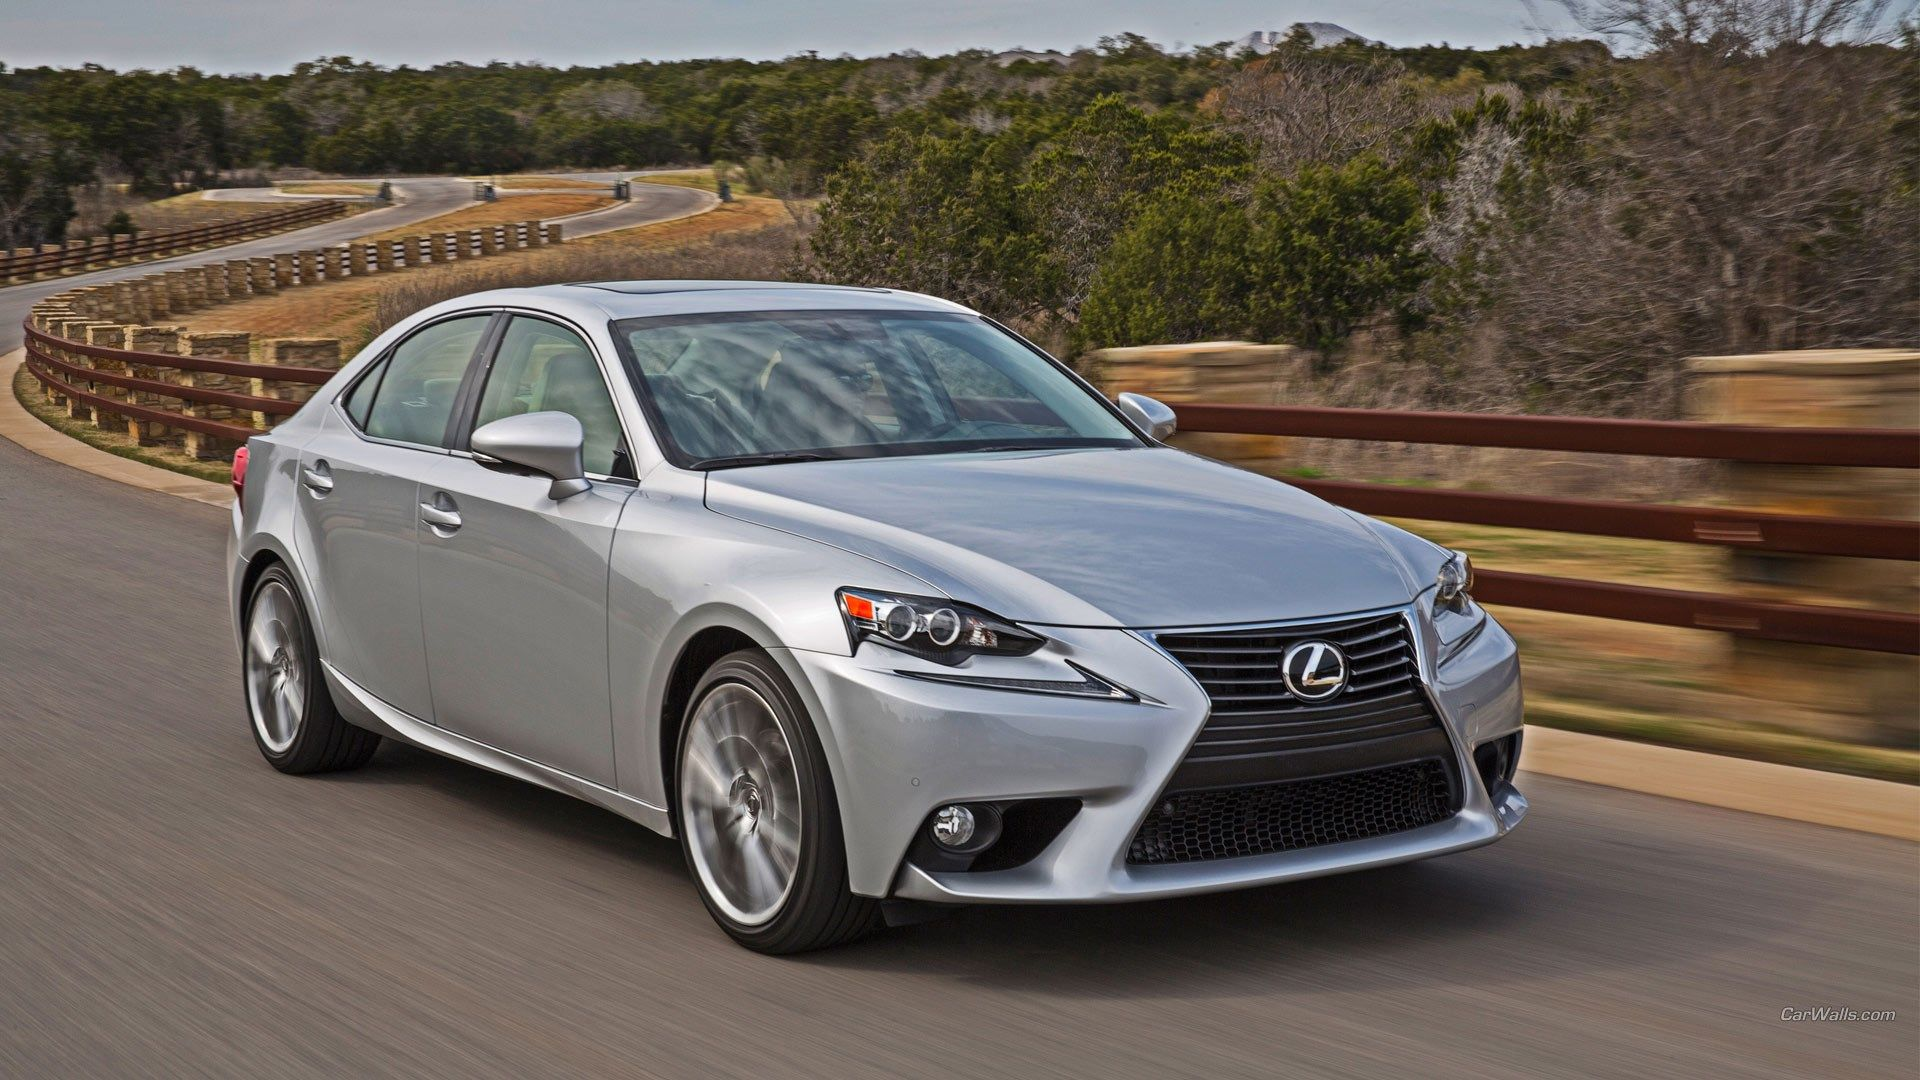 Lexus is high definition background 1920x1080 http krro com mx